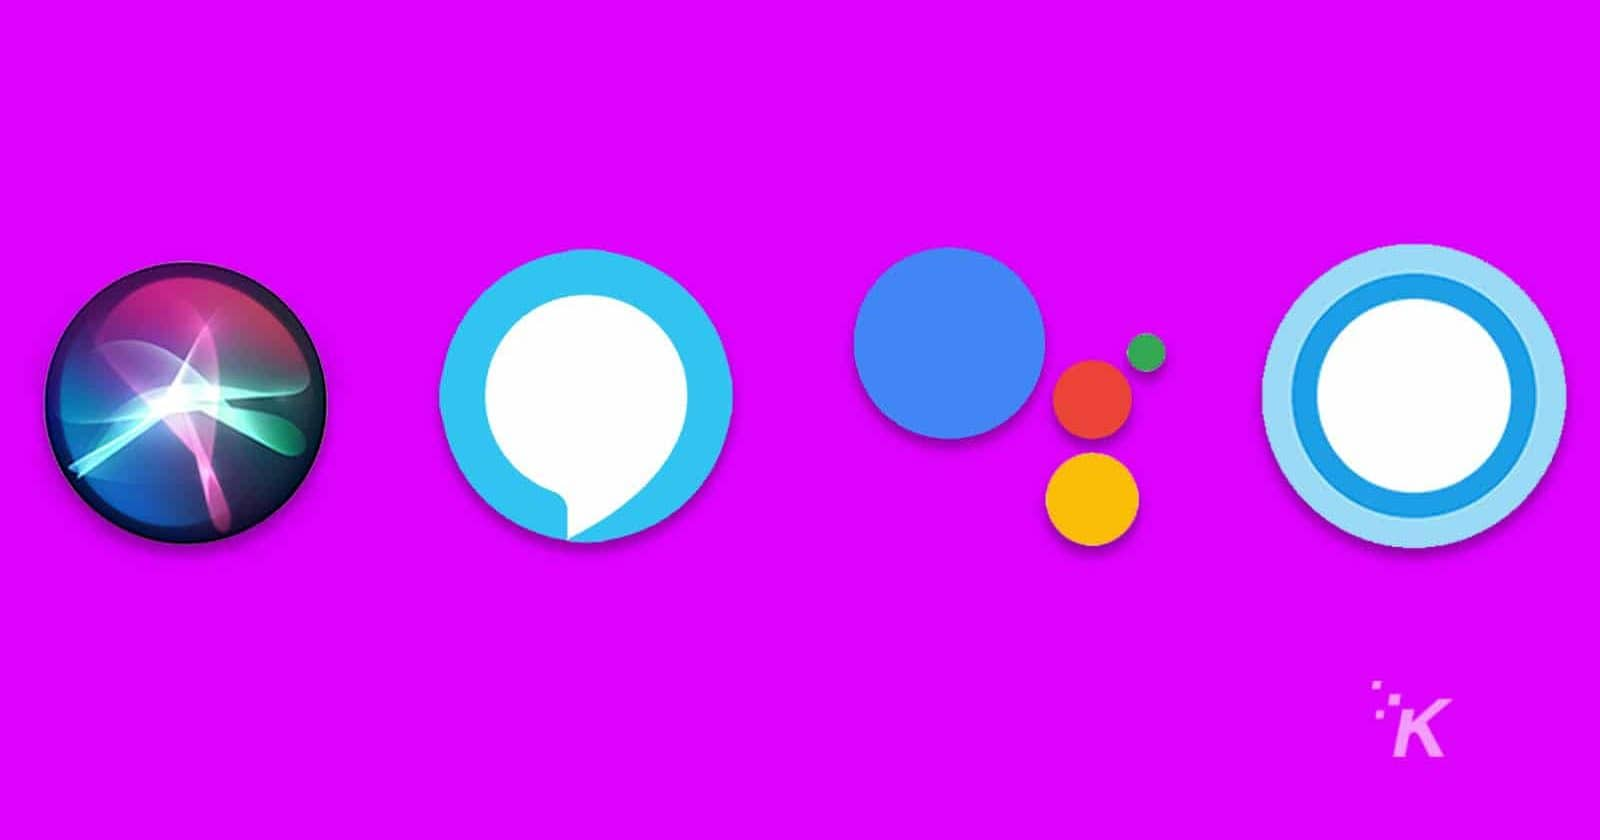 voice assistant logos on purple background